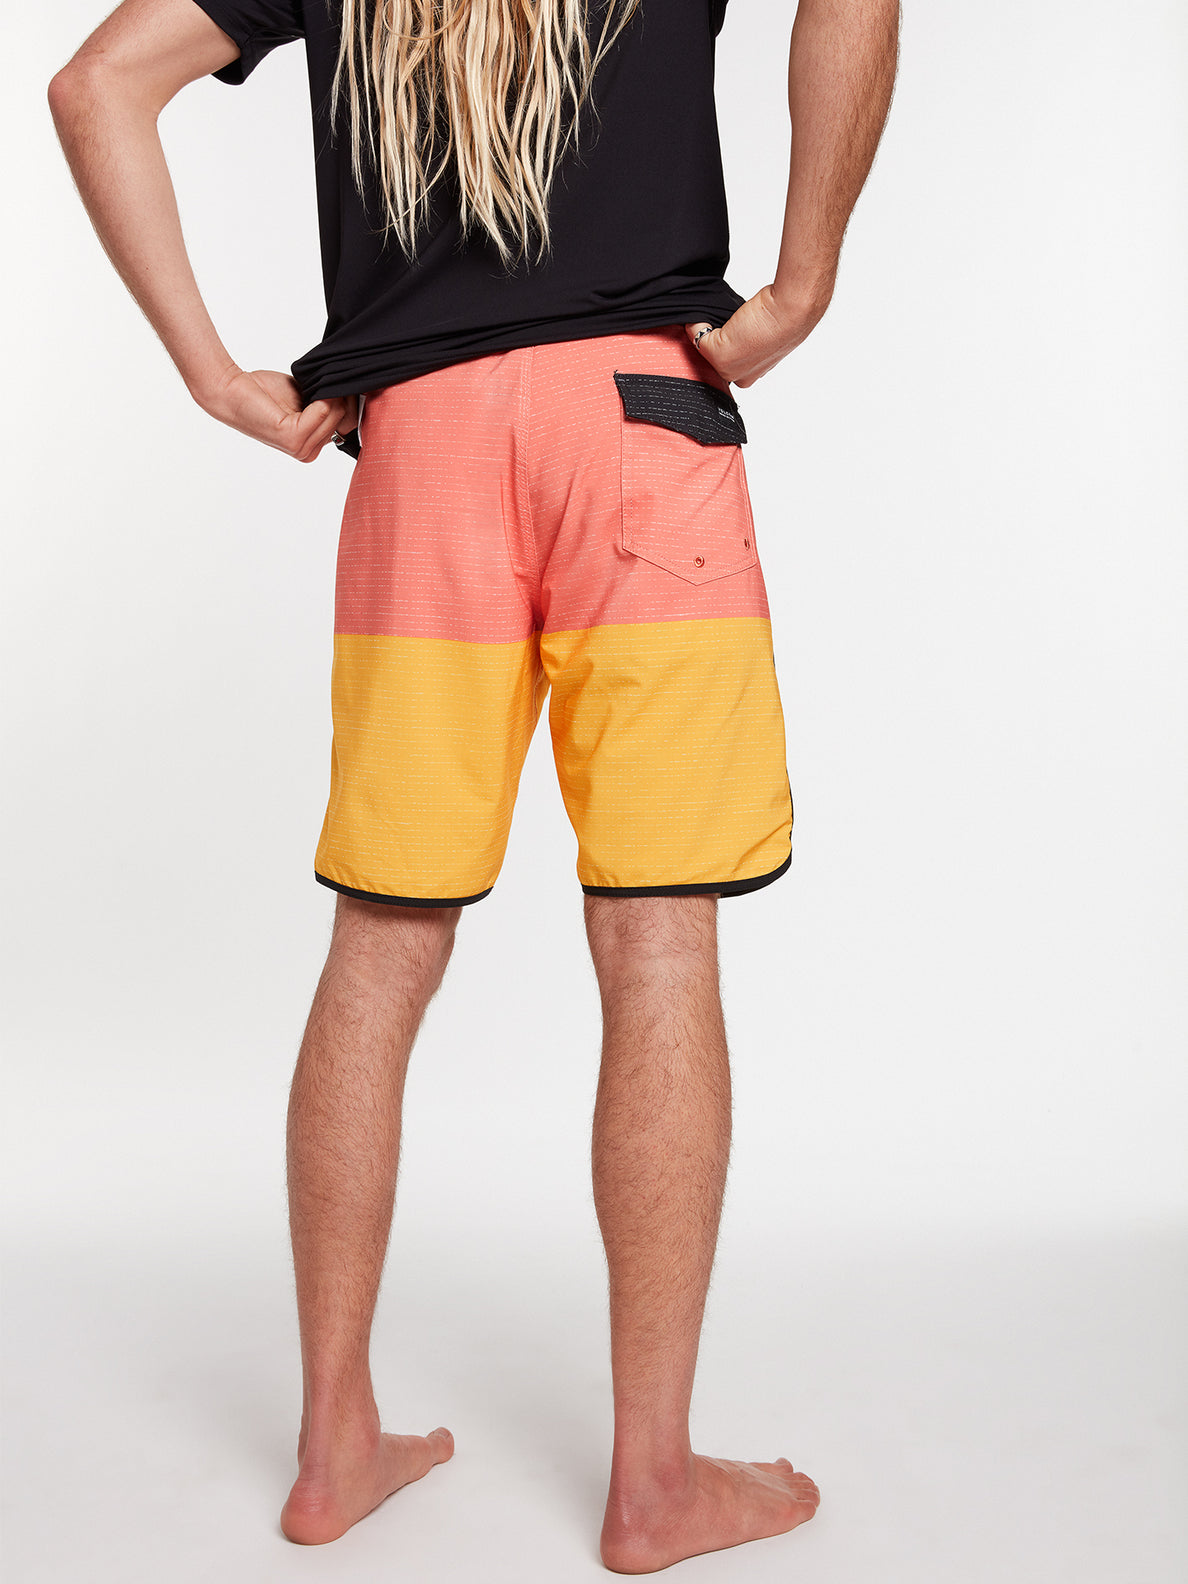 Lido Scallop Mod-Tech Trunks - Mineral Yellow (A0822015_MYL) [10]